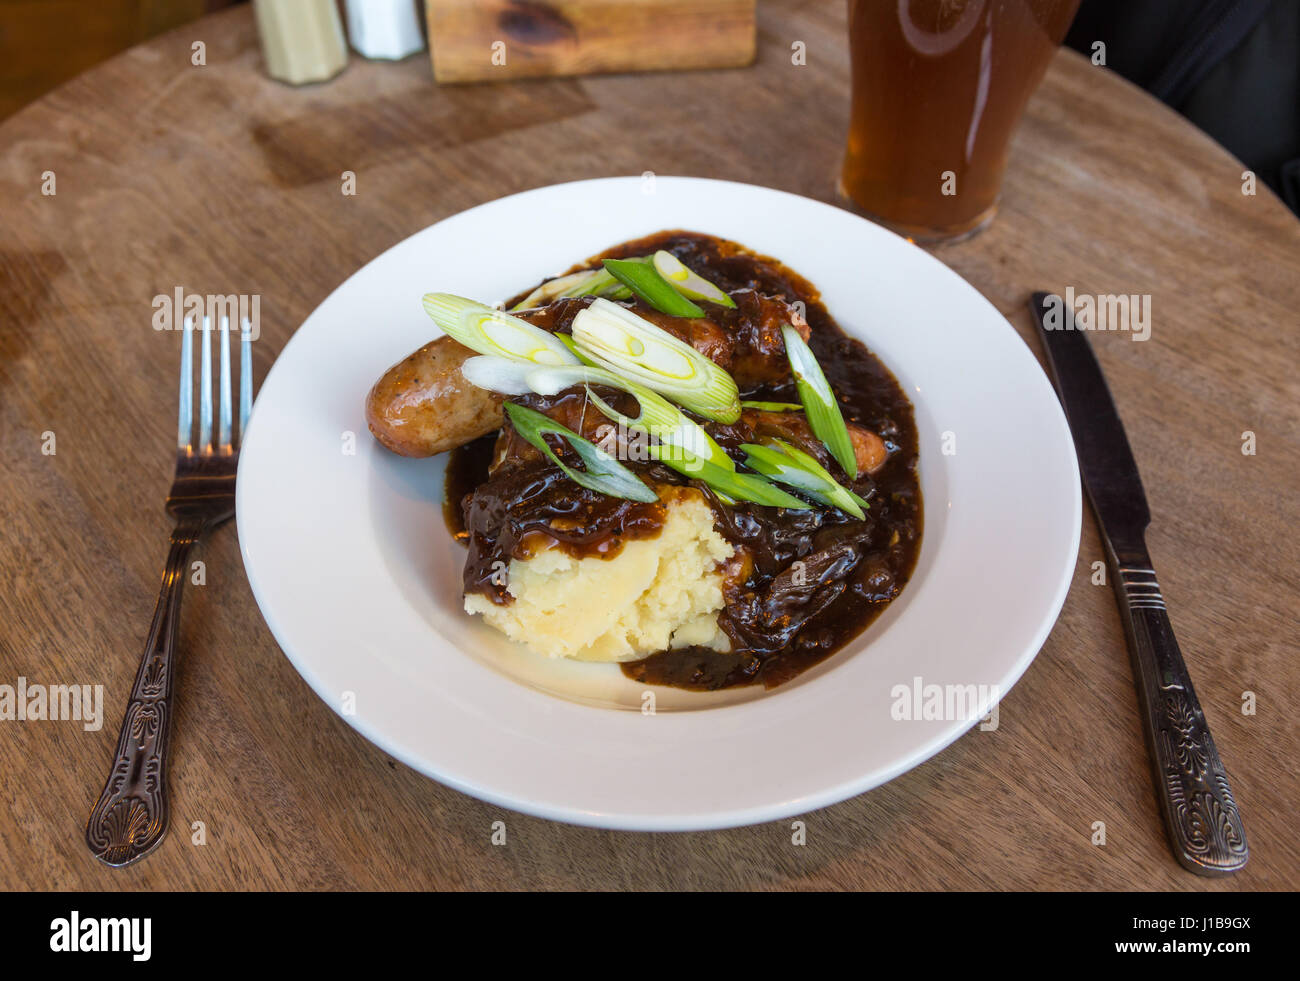 Plate of traditional British pub food - plate of sausage and mash with onion gravy and a pint of real ale, UK - Stock Image